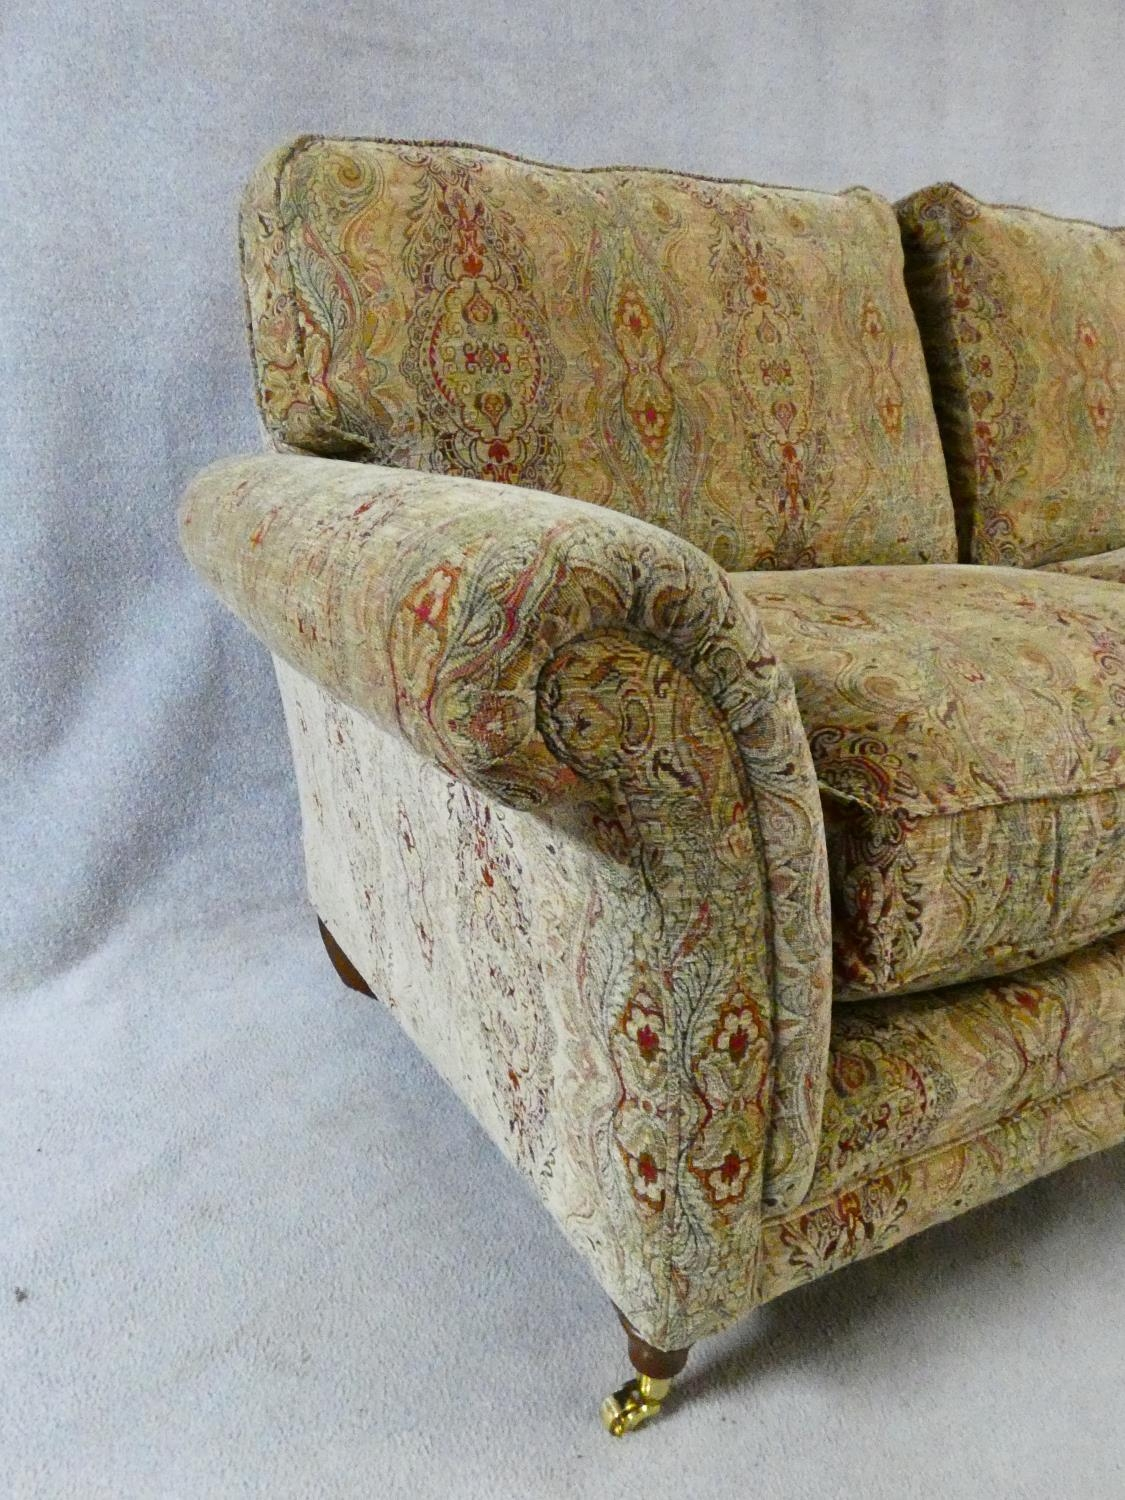 A large Parker Knoll two seater Burghley sofa in Baslow Medalli gold upholstery raised on turned - Image 6 of 10